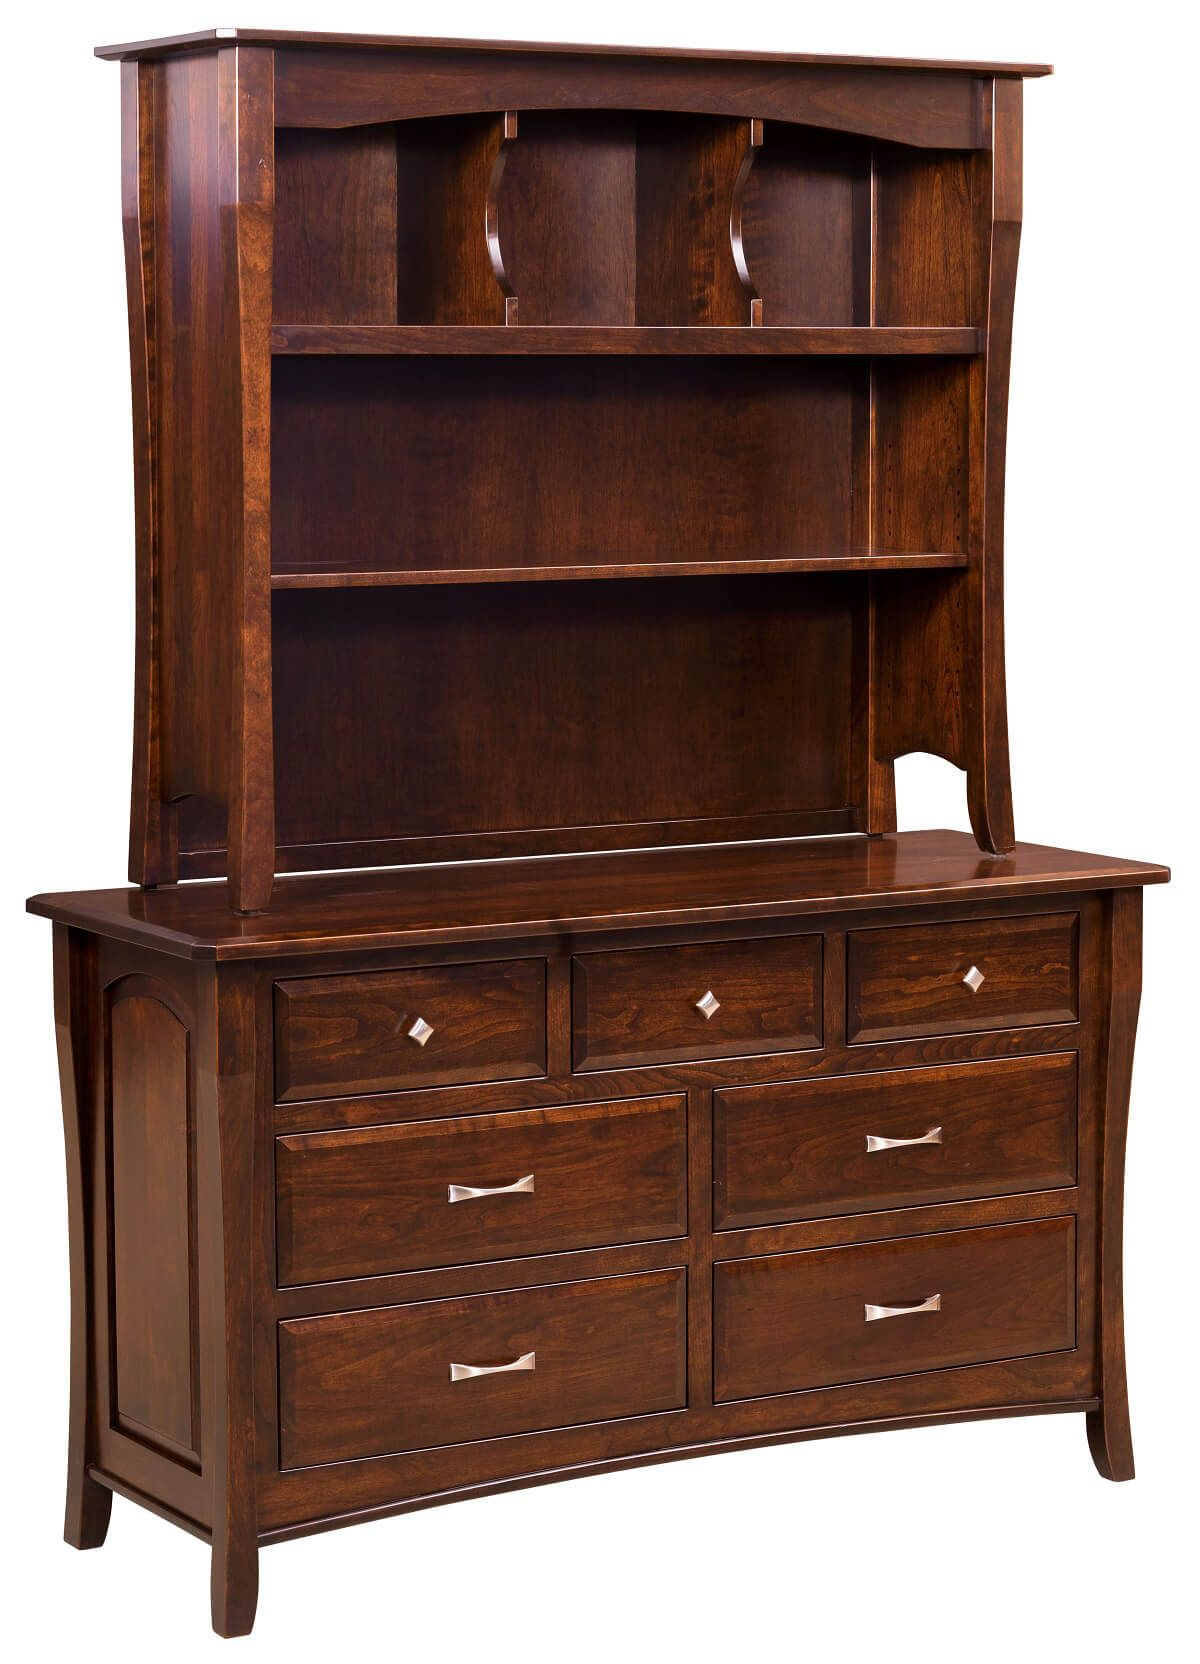 Luxembourg Baby Dresser with Hutch